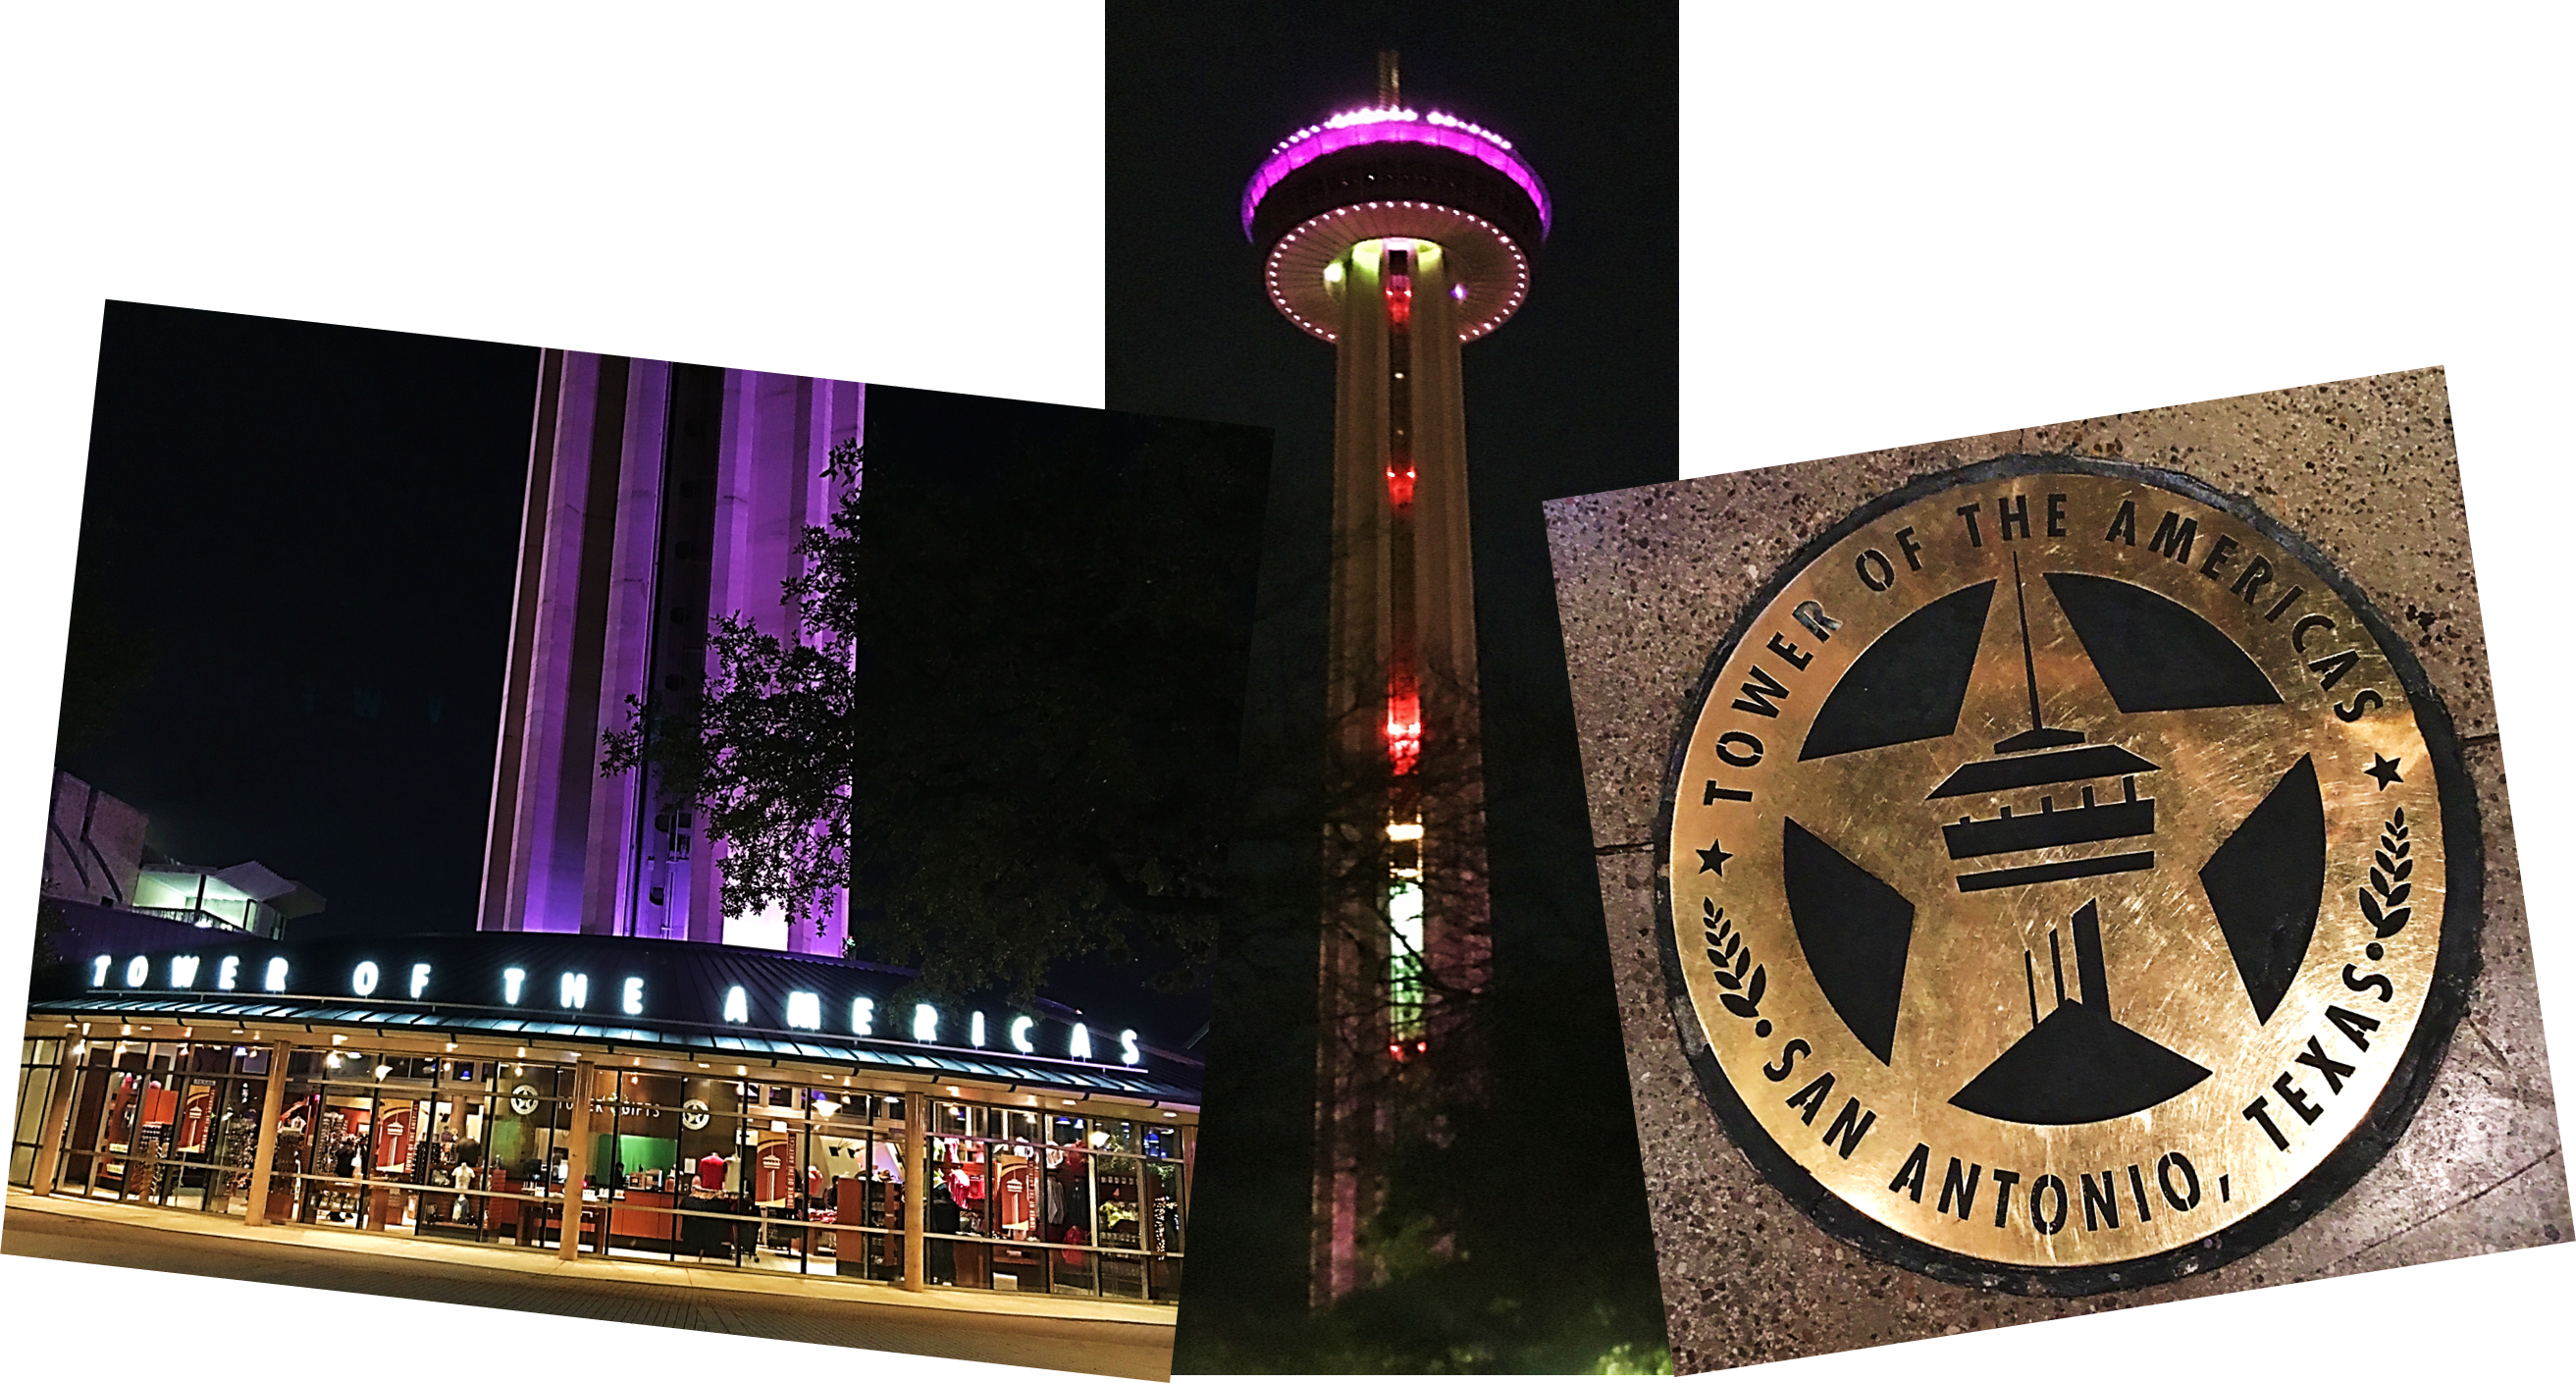 Tower of the Americas San Antonio